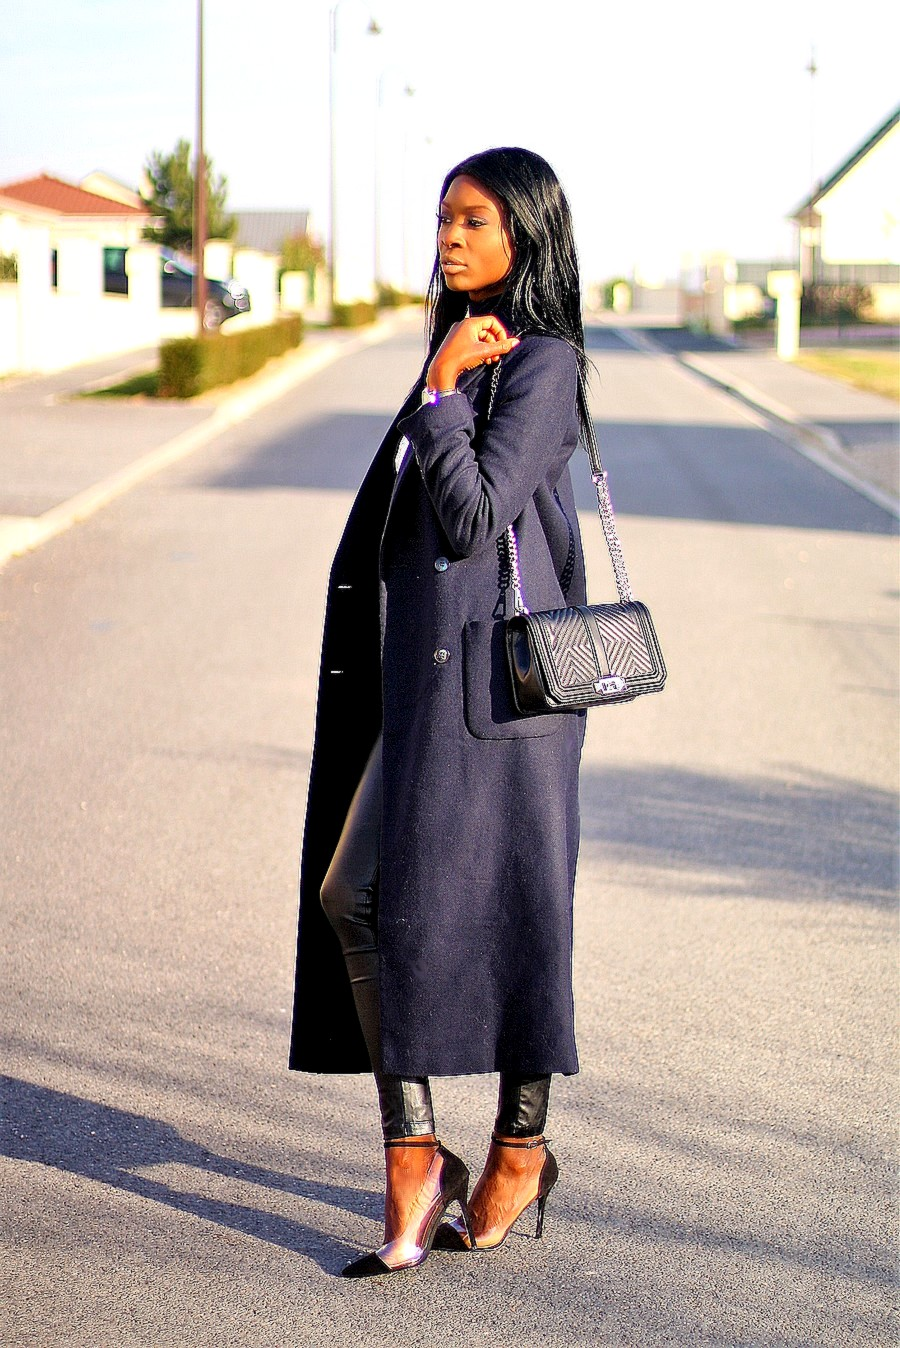 escarpins-louboutin-dupe-manteau-long-officier-asos-mango